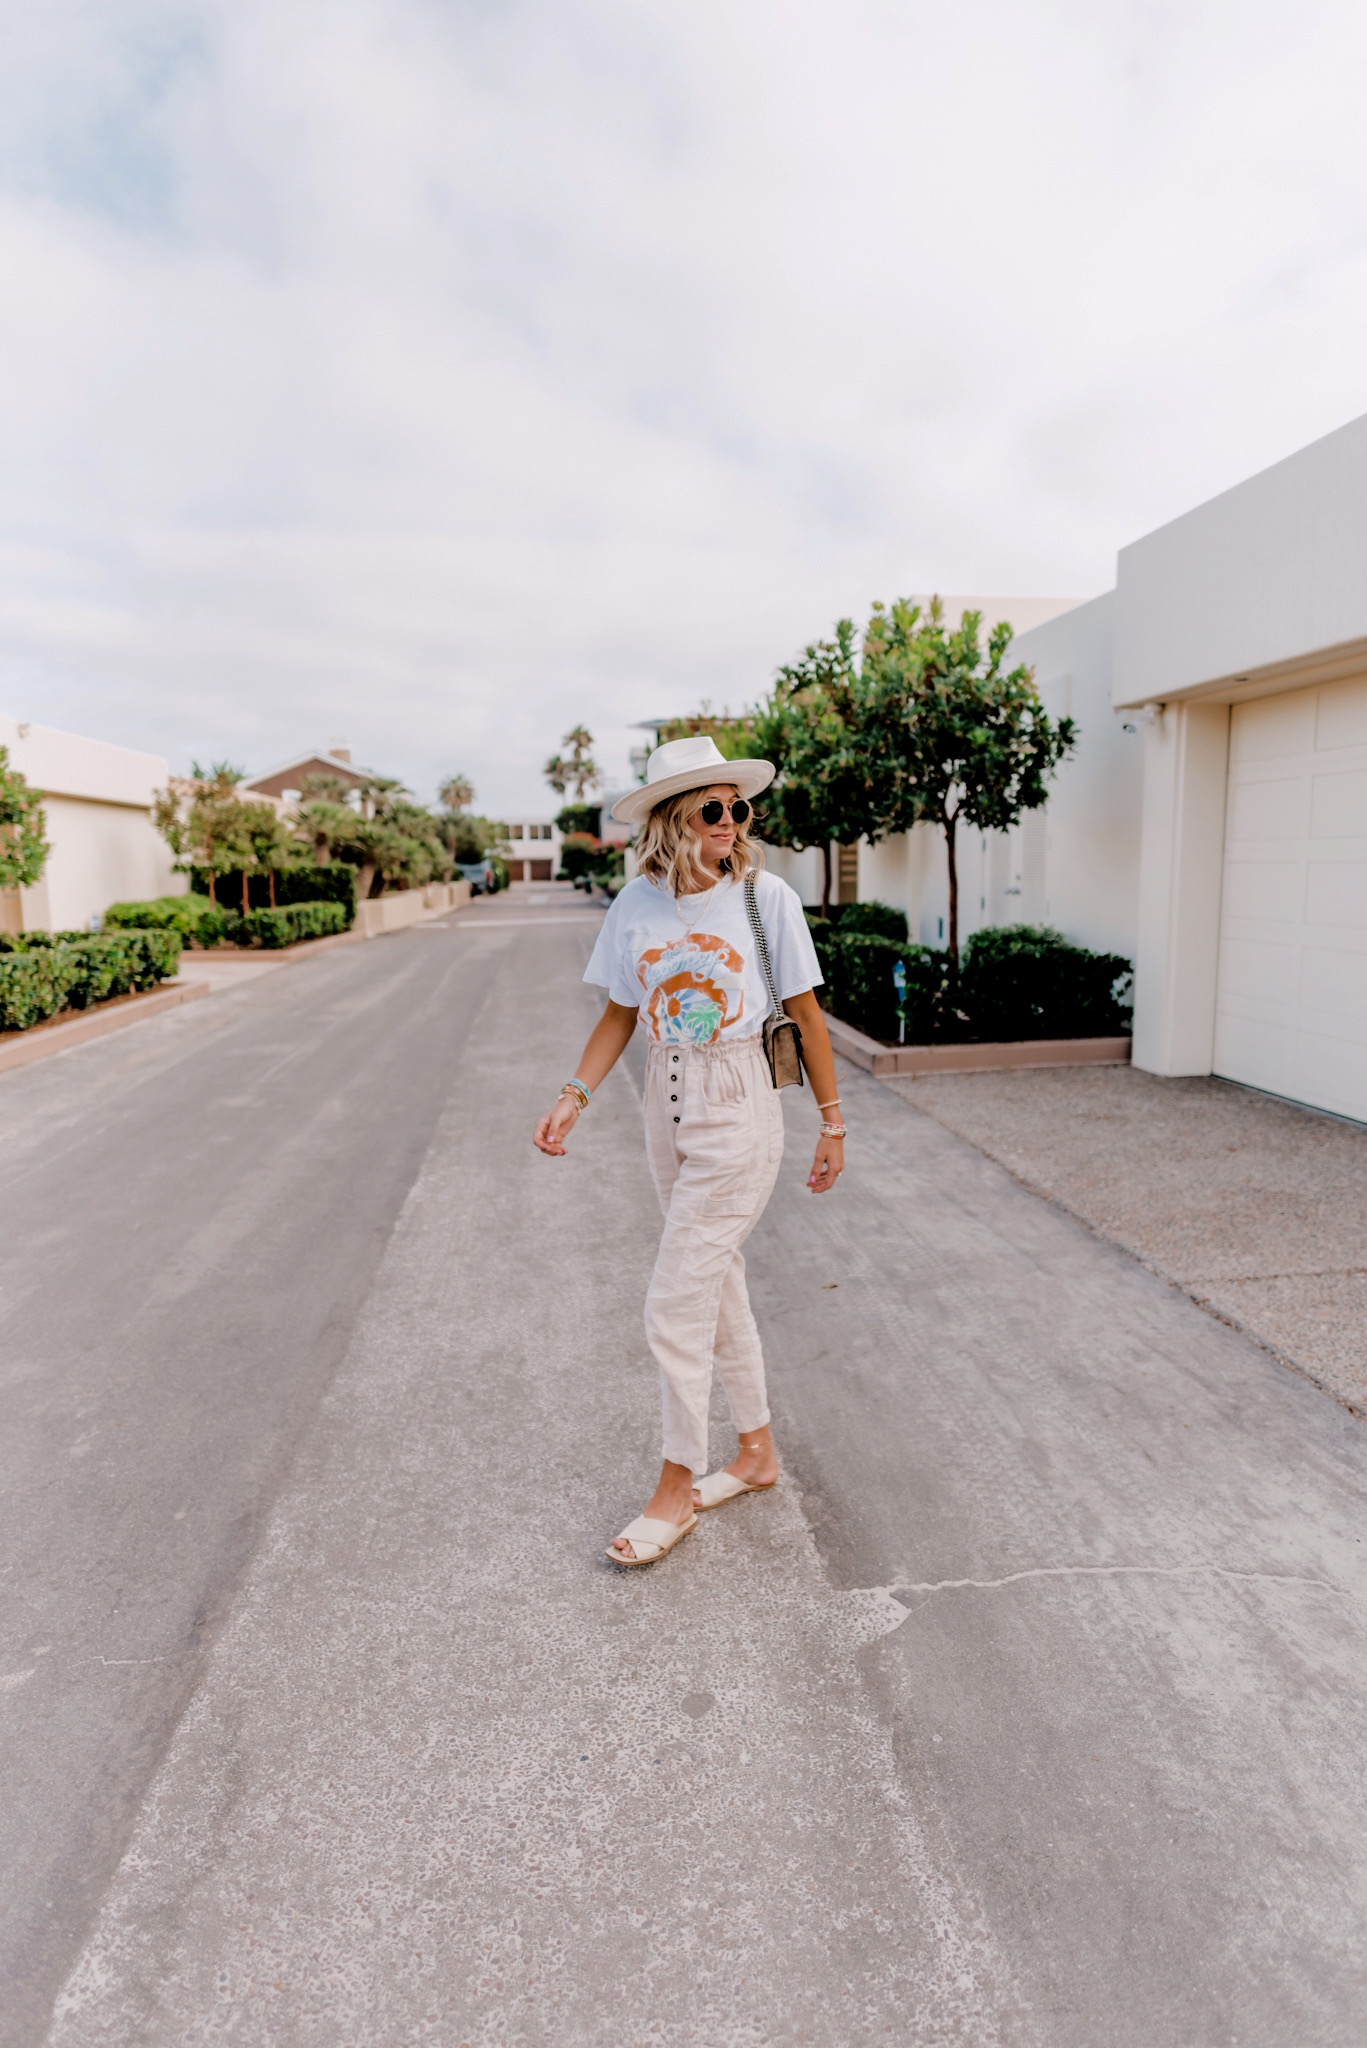 Graphic Tees by popular San Diego fashion blog, Navy Grace: image of a woman wearing a pair of Anthropologie Linen Utility Pants, Everlane The Day Crossover Sandal, Gigi Pip ARLO CREAM BAND - STRAW TEARDROP FEDORA, Gucci Dionysus GG Supreme mini bag, Ray-Ban sunglasses, and a Free People Beach Boys Tee.